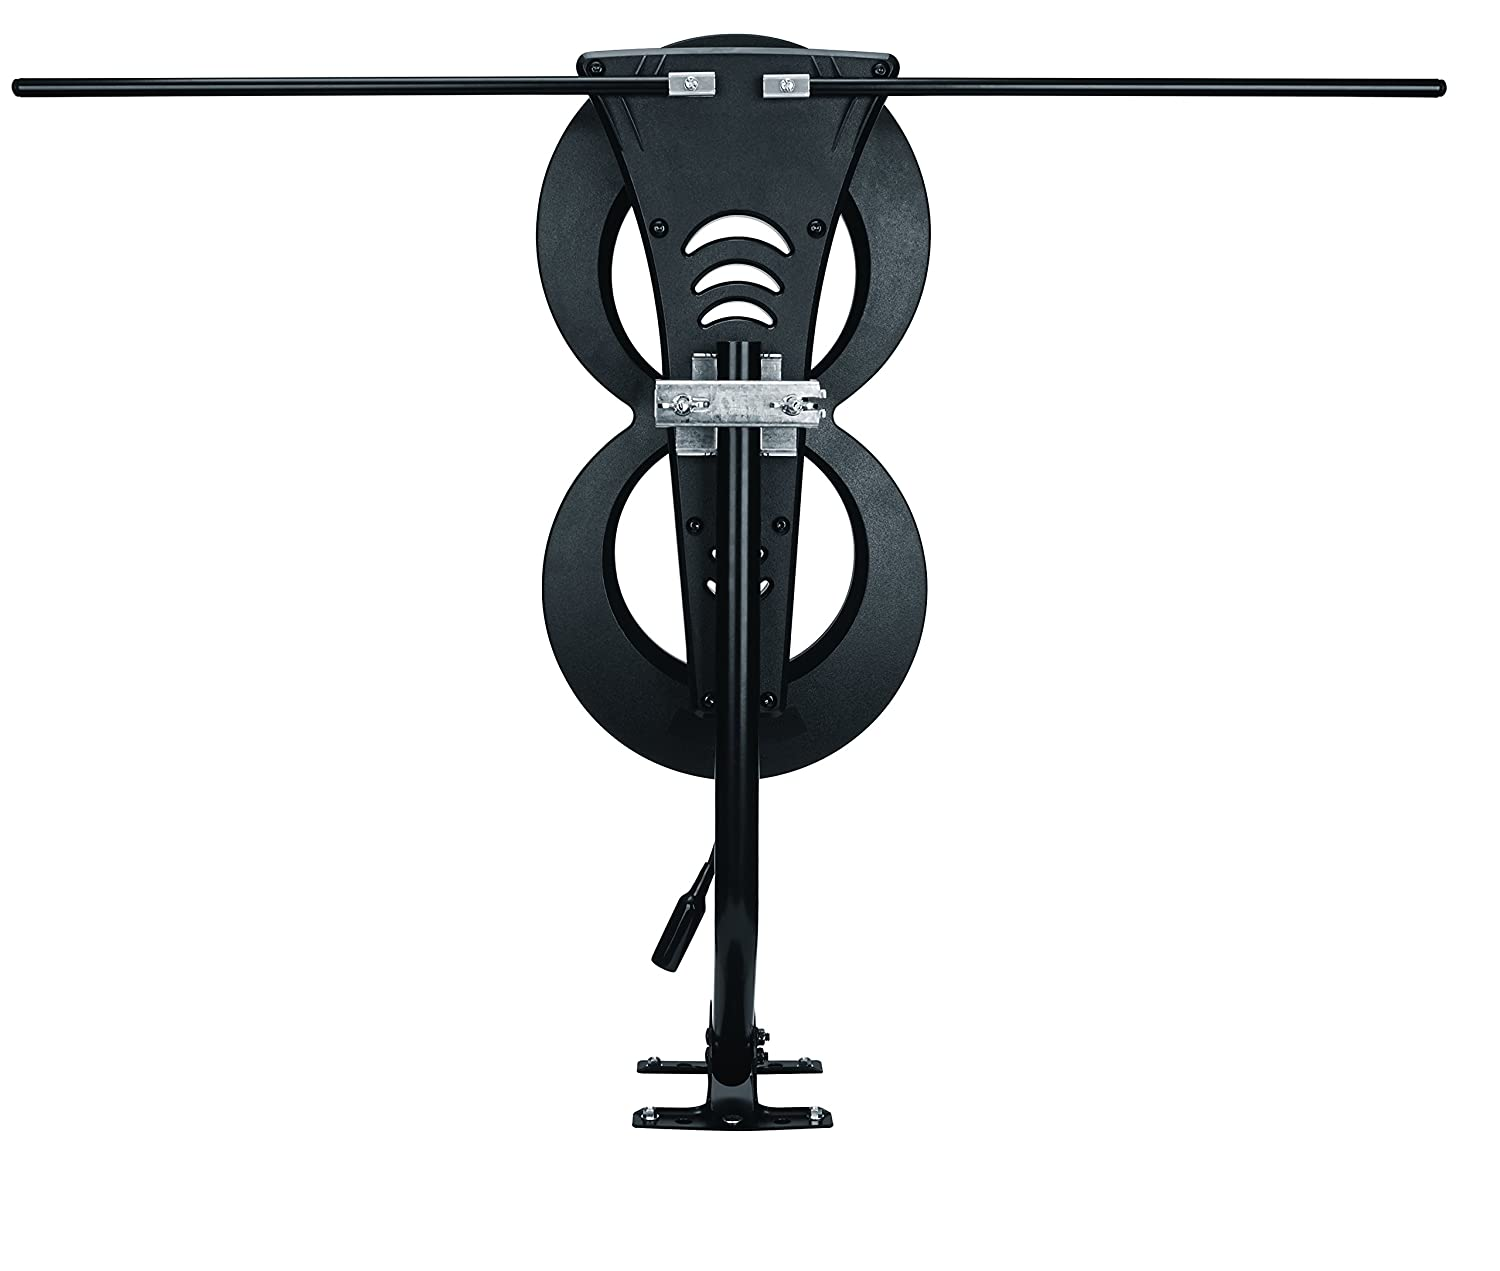 ClearStream 2MAX TV Antenna, 60+ Mile Range, Multi-directional, Indoor,  Attic, Outdoor, 20-inch Mast with Pivoting Base, All-Weather Mounting